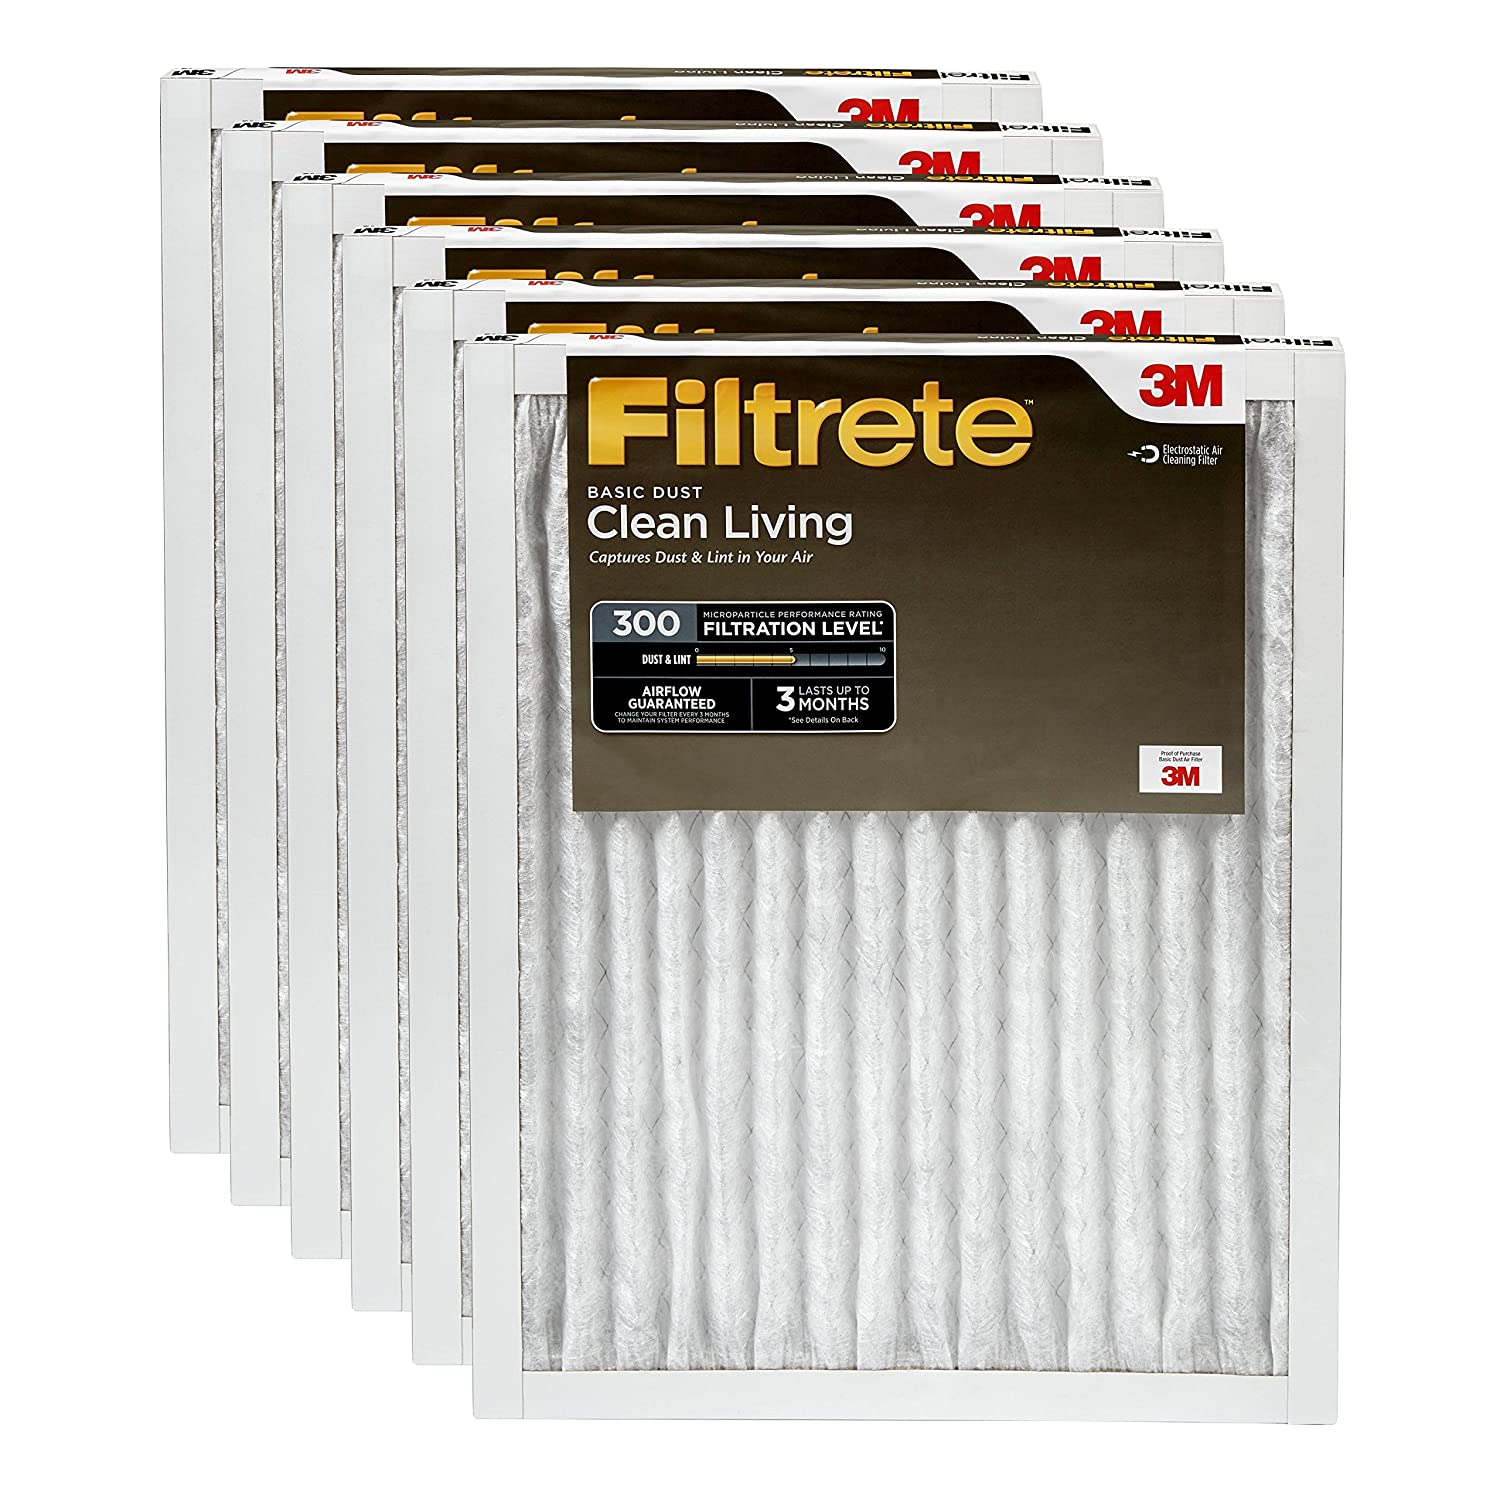 Filtrete 20x25x1, AC Furnace Air Filter, MPR 300, Clean Living Basic Dust